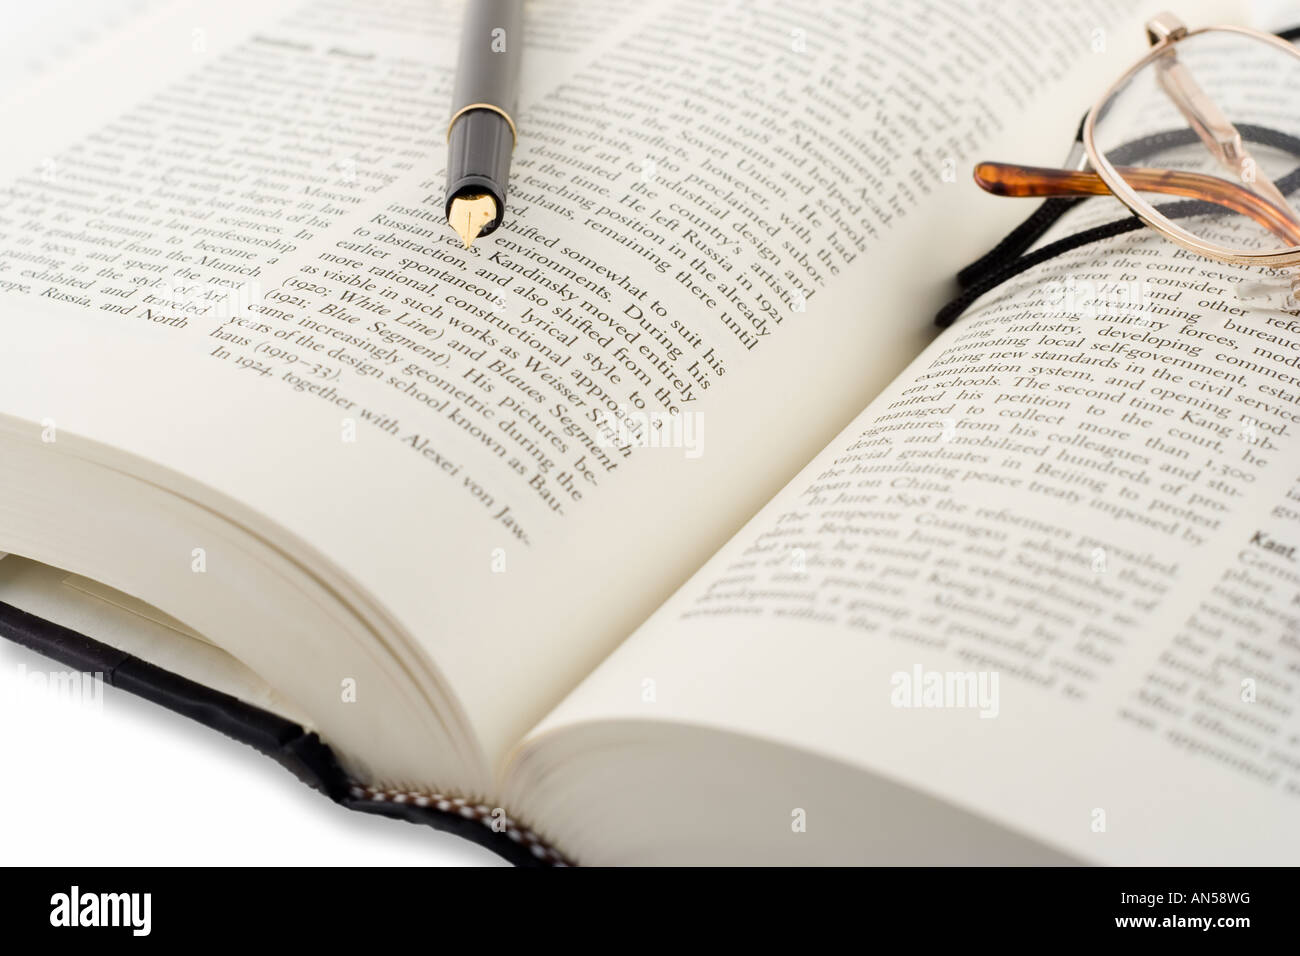 Open Book Glasses And A Pen Stock Photo, Royalty Free